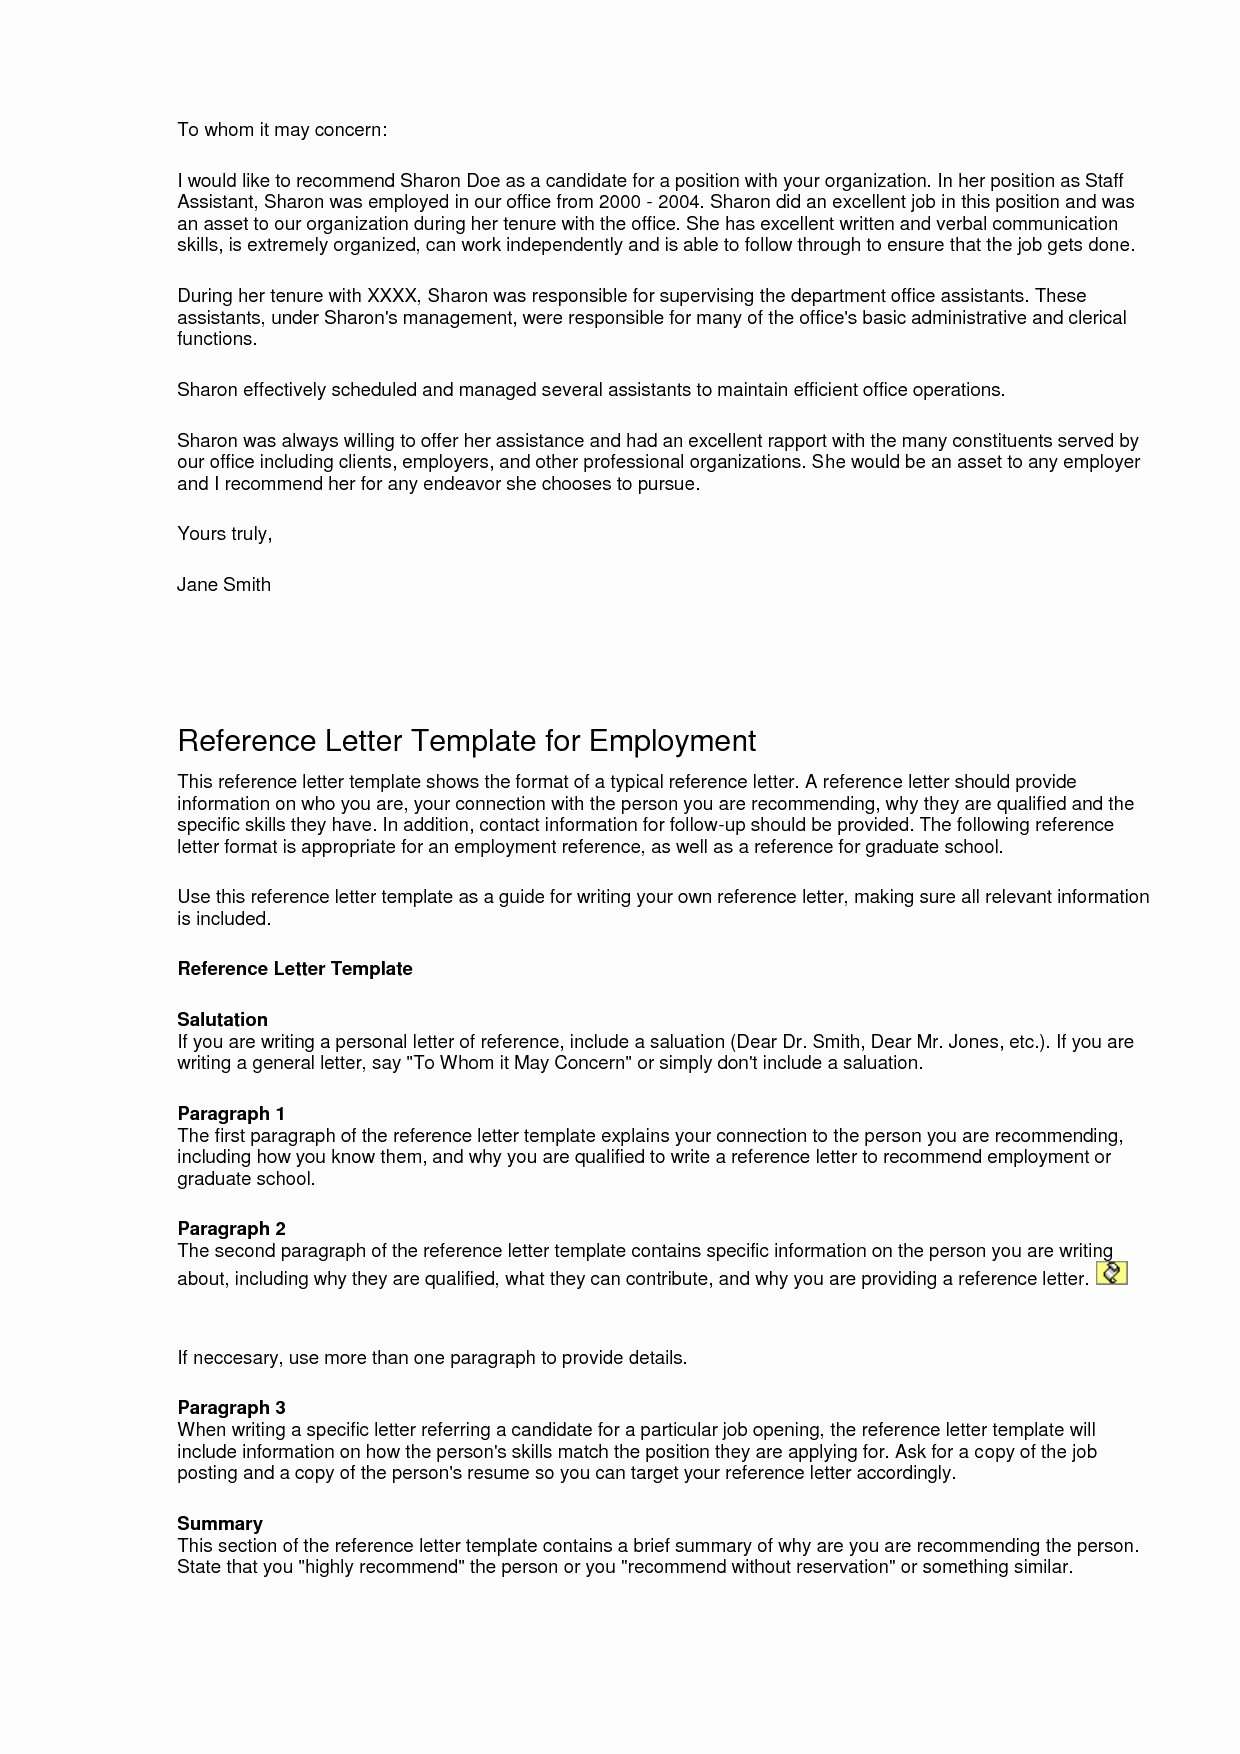 Generic Letter Of Recommendation Template Unique Reference Letters for Job Applicants